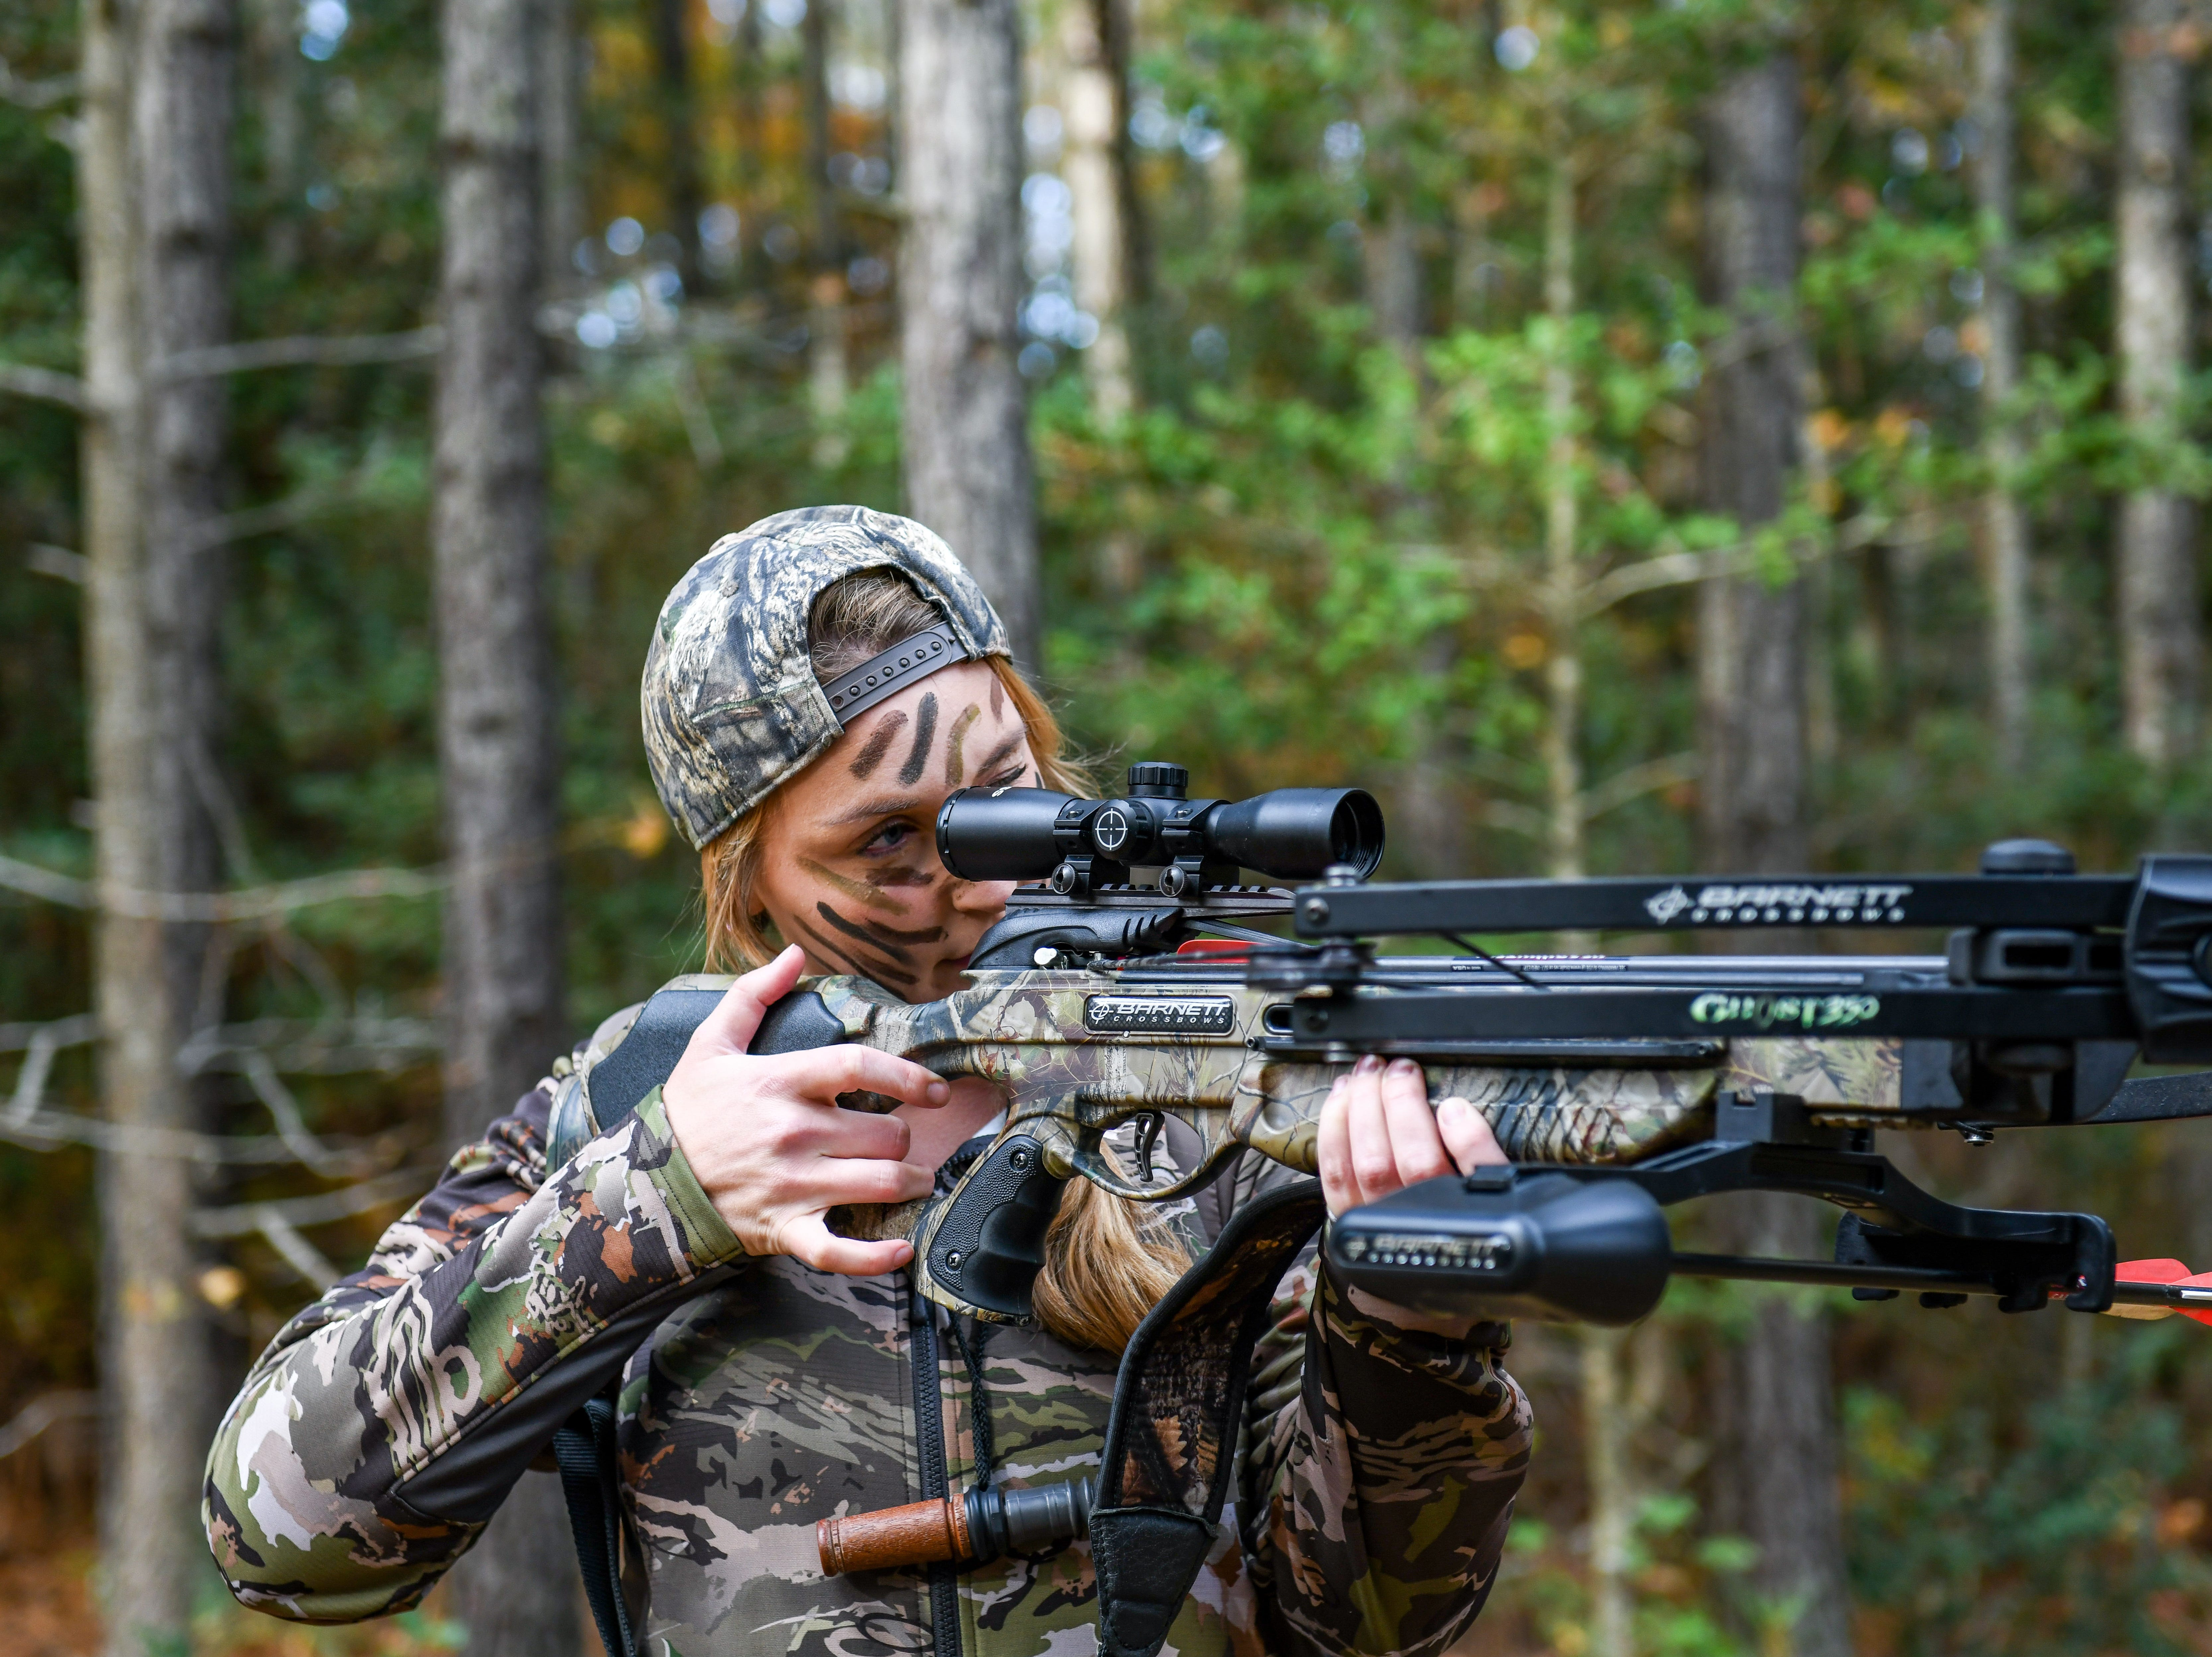 Fidelia Kurtz looks through her scope for deer in the woods on the way out to her hunting stand in Snow Hill on Thursday, Nov 8, 2018.